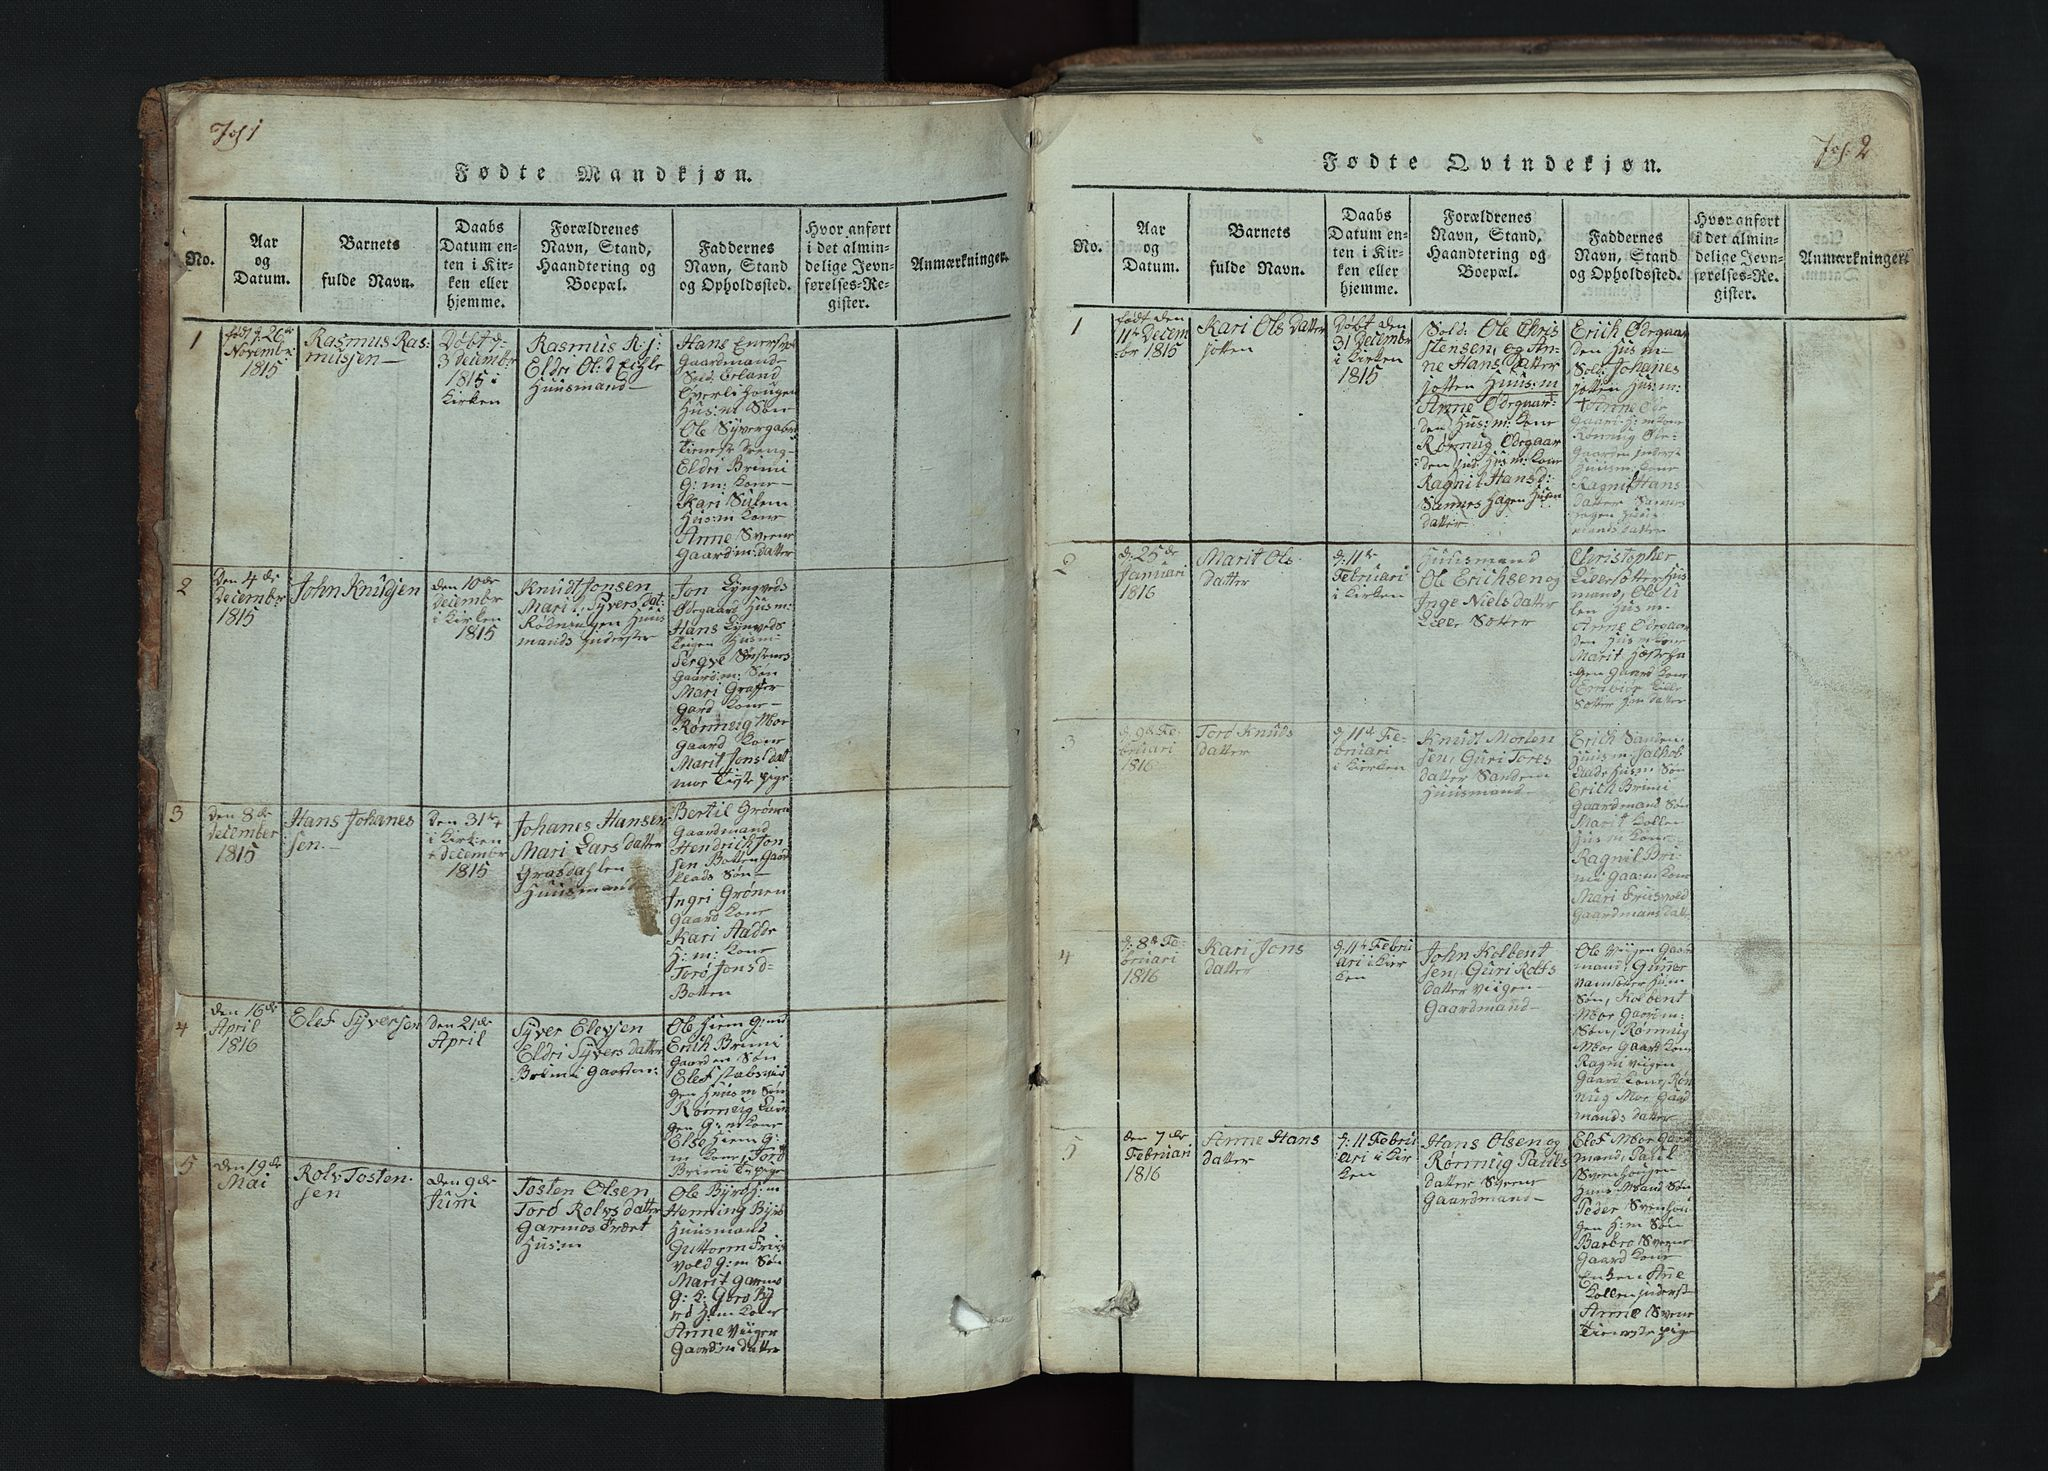 SAH, Lom prestekontor, L/L0002: Parish register (copy) no. 2, 1815-1844, p. 2